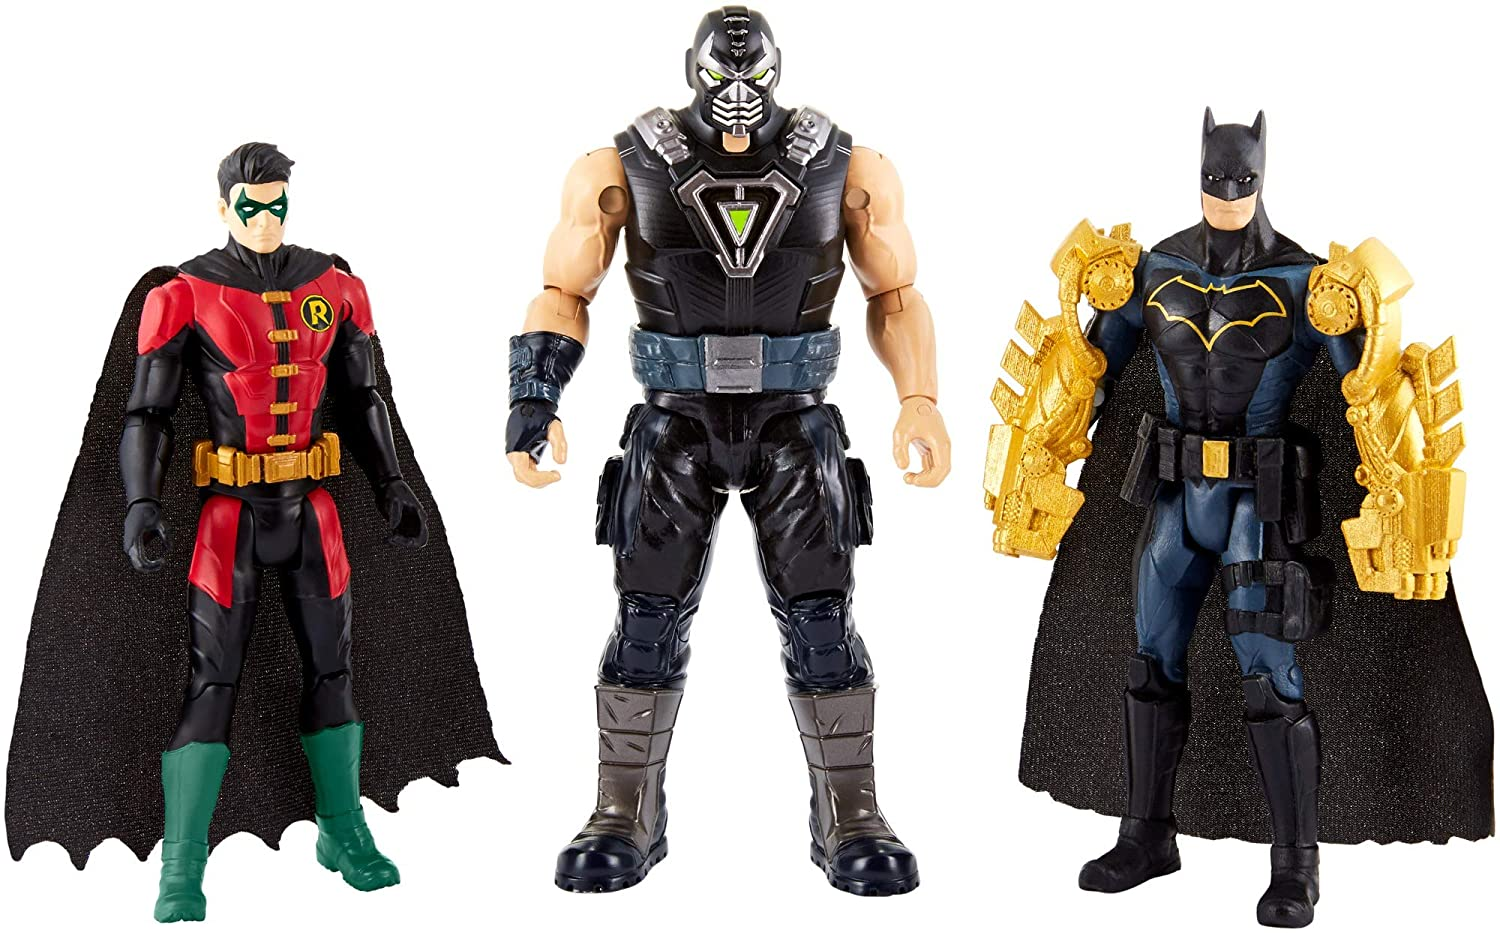 Batman FVM57 Missions and Robin Vs Bane Figure, Multi-Colour Mattel